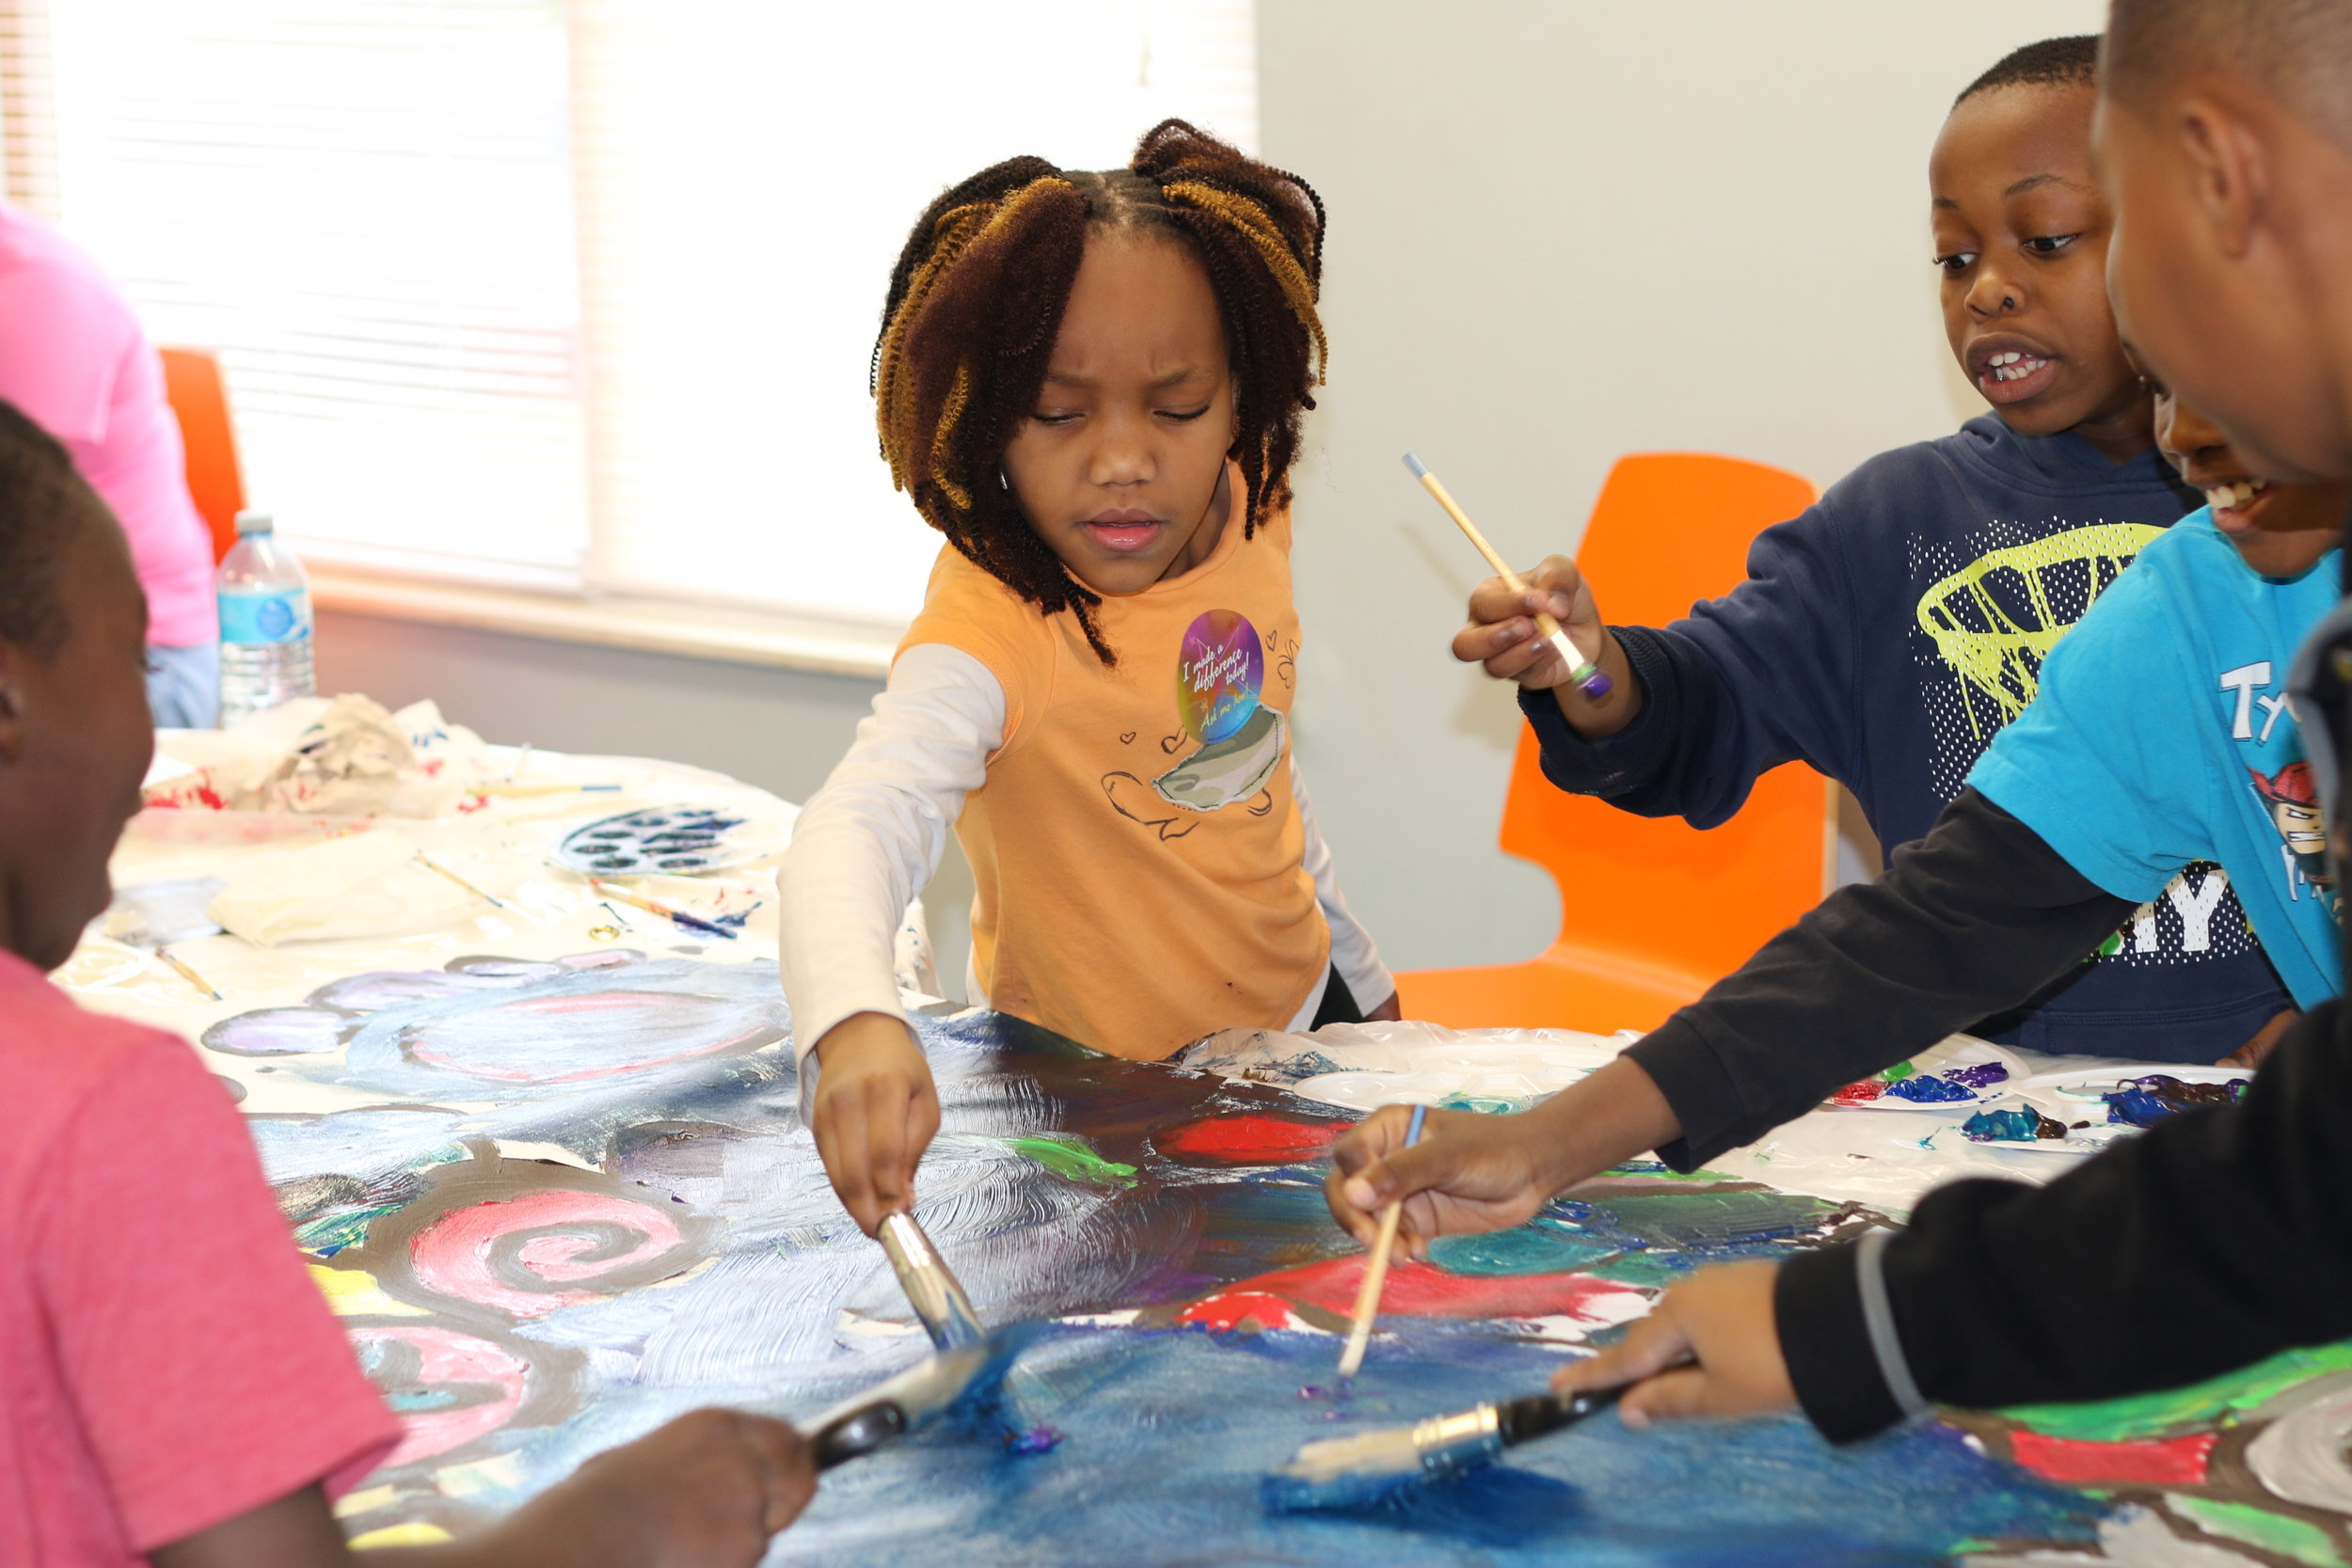 Georges Creek children painted murals as part of a celebration of Dr. Martin Luther King Jr.